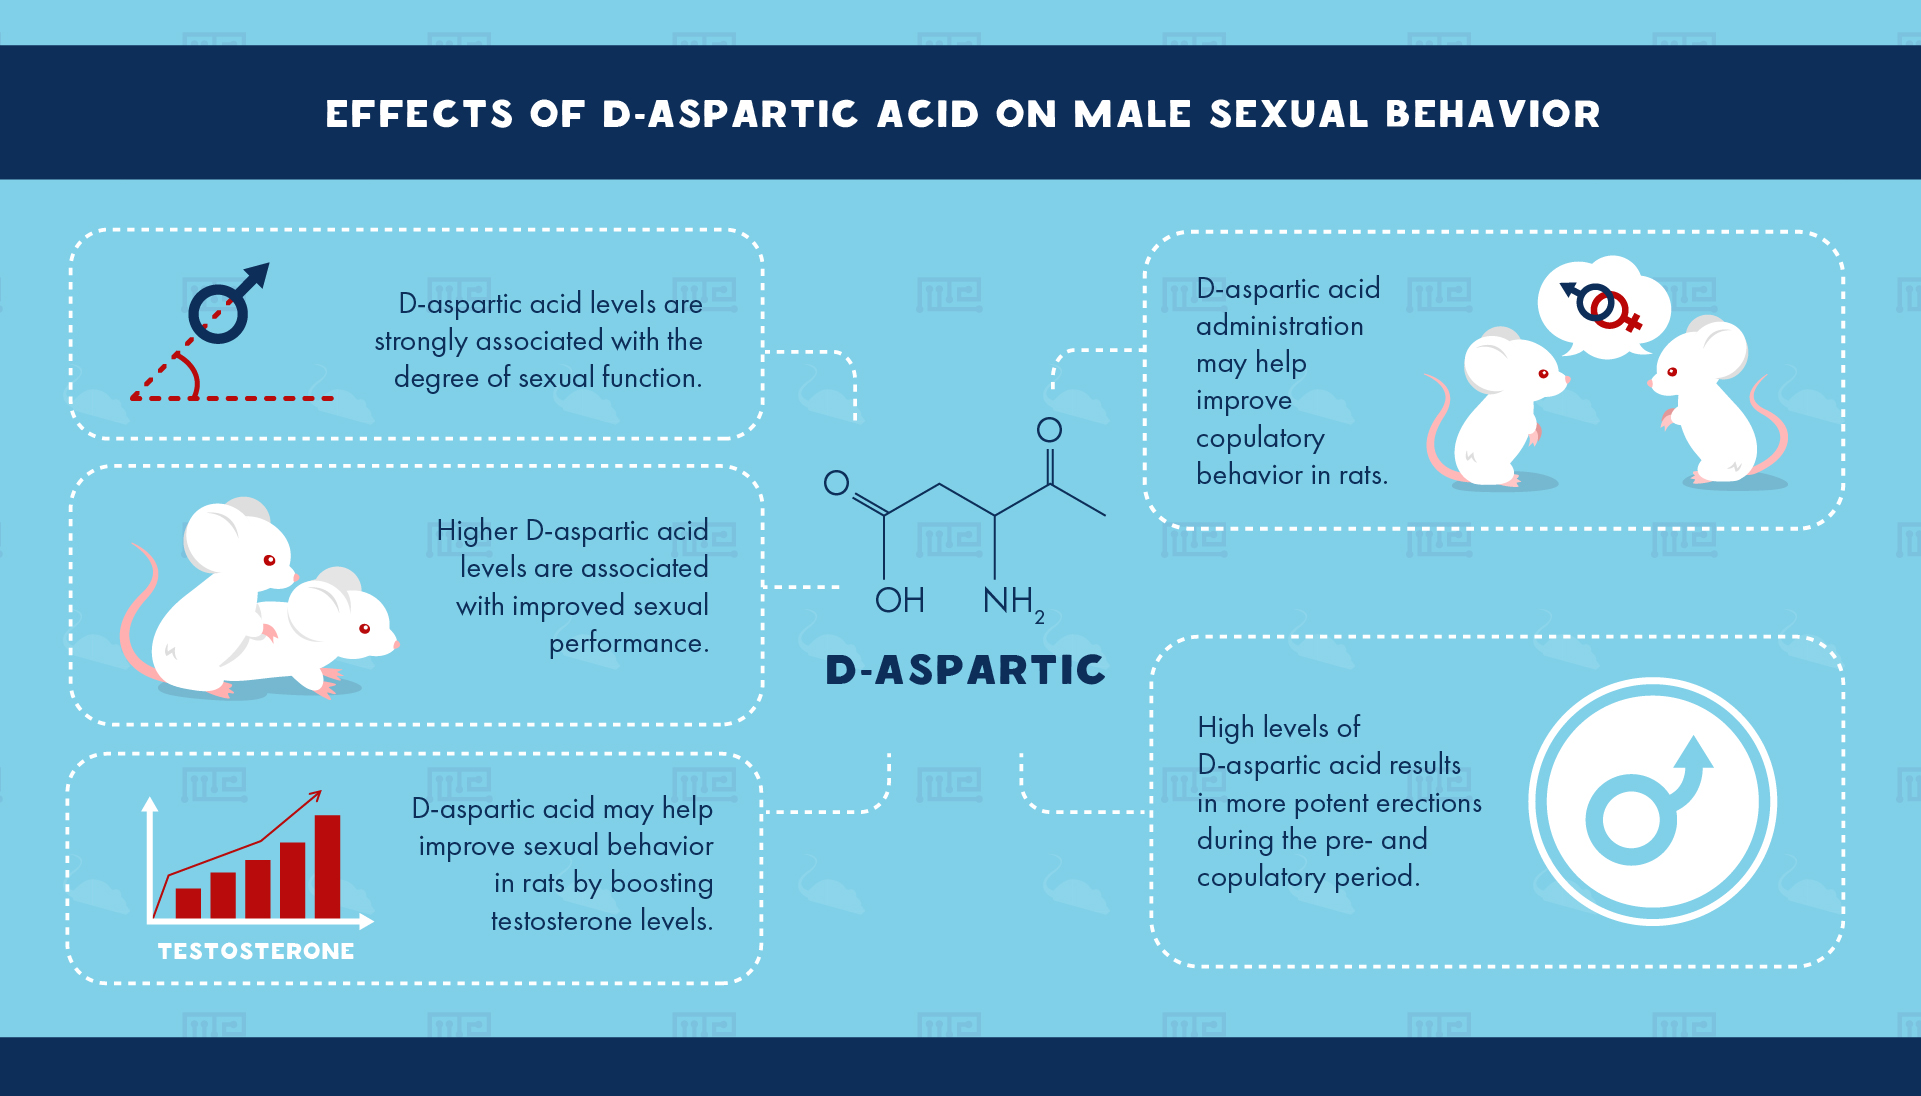 Effects of D-Aspartic Acid on Male Sexual Behavior